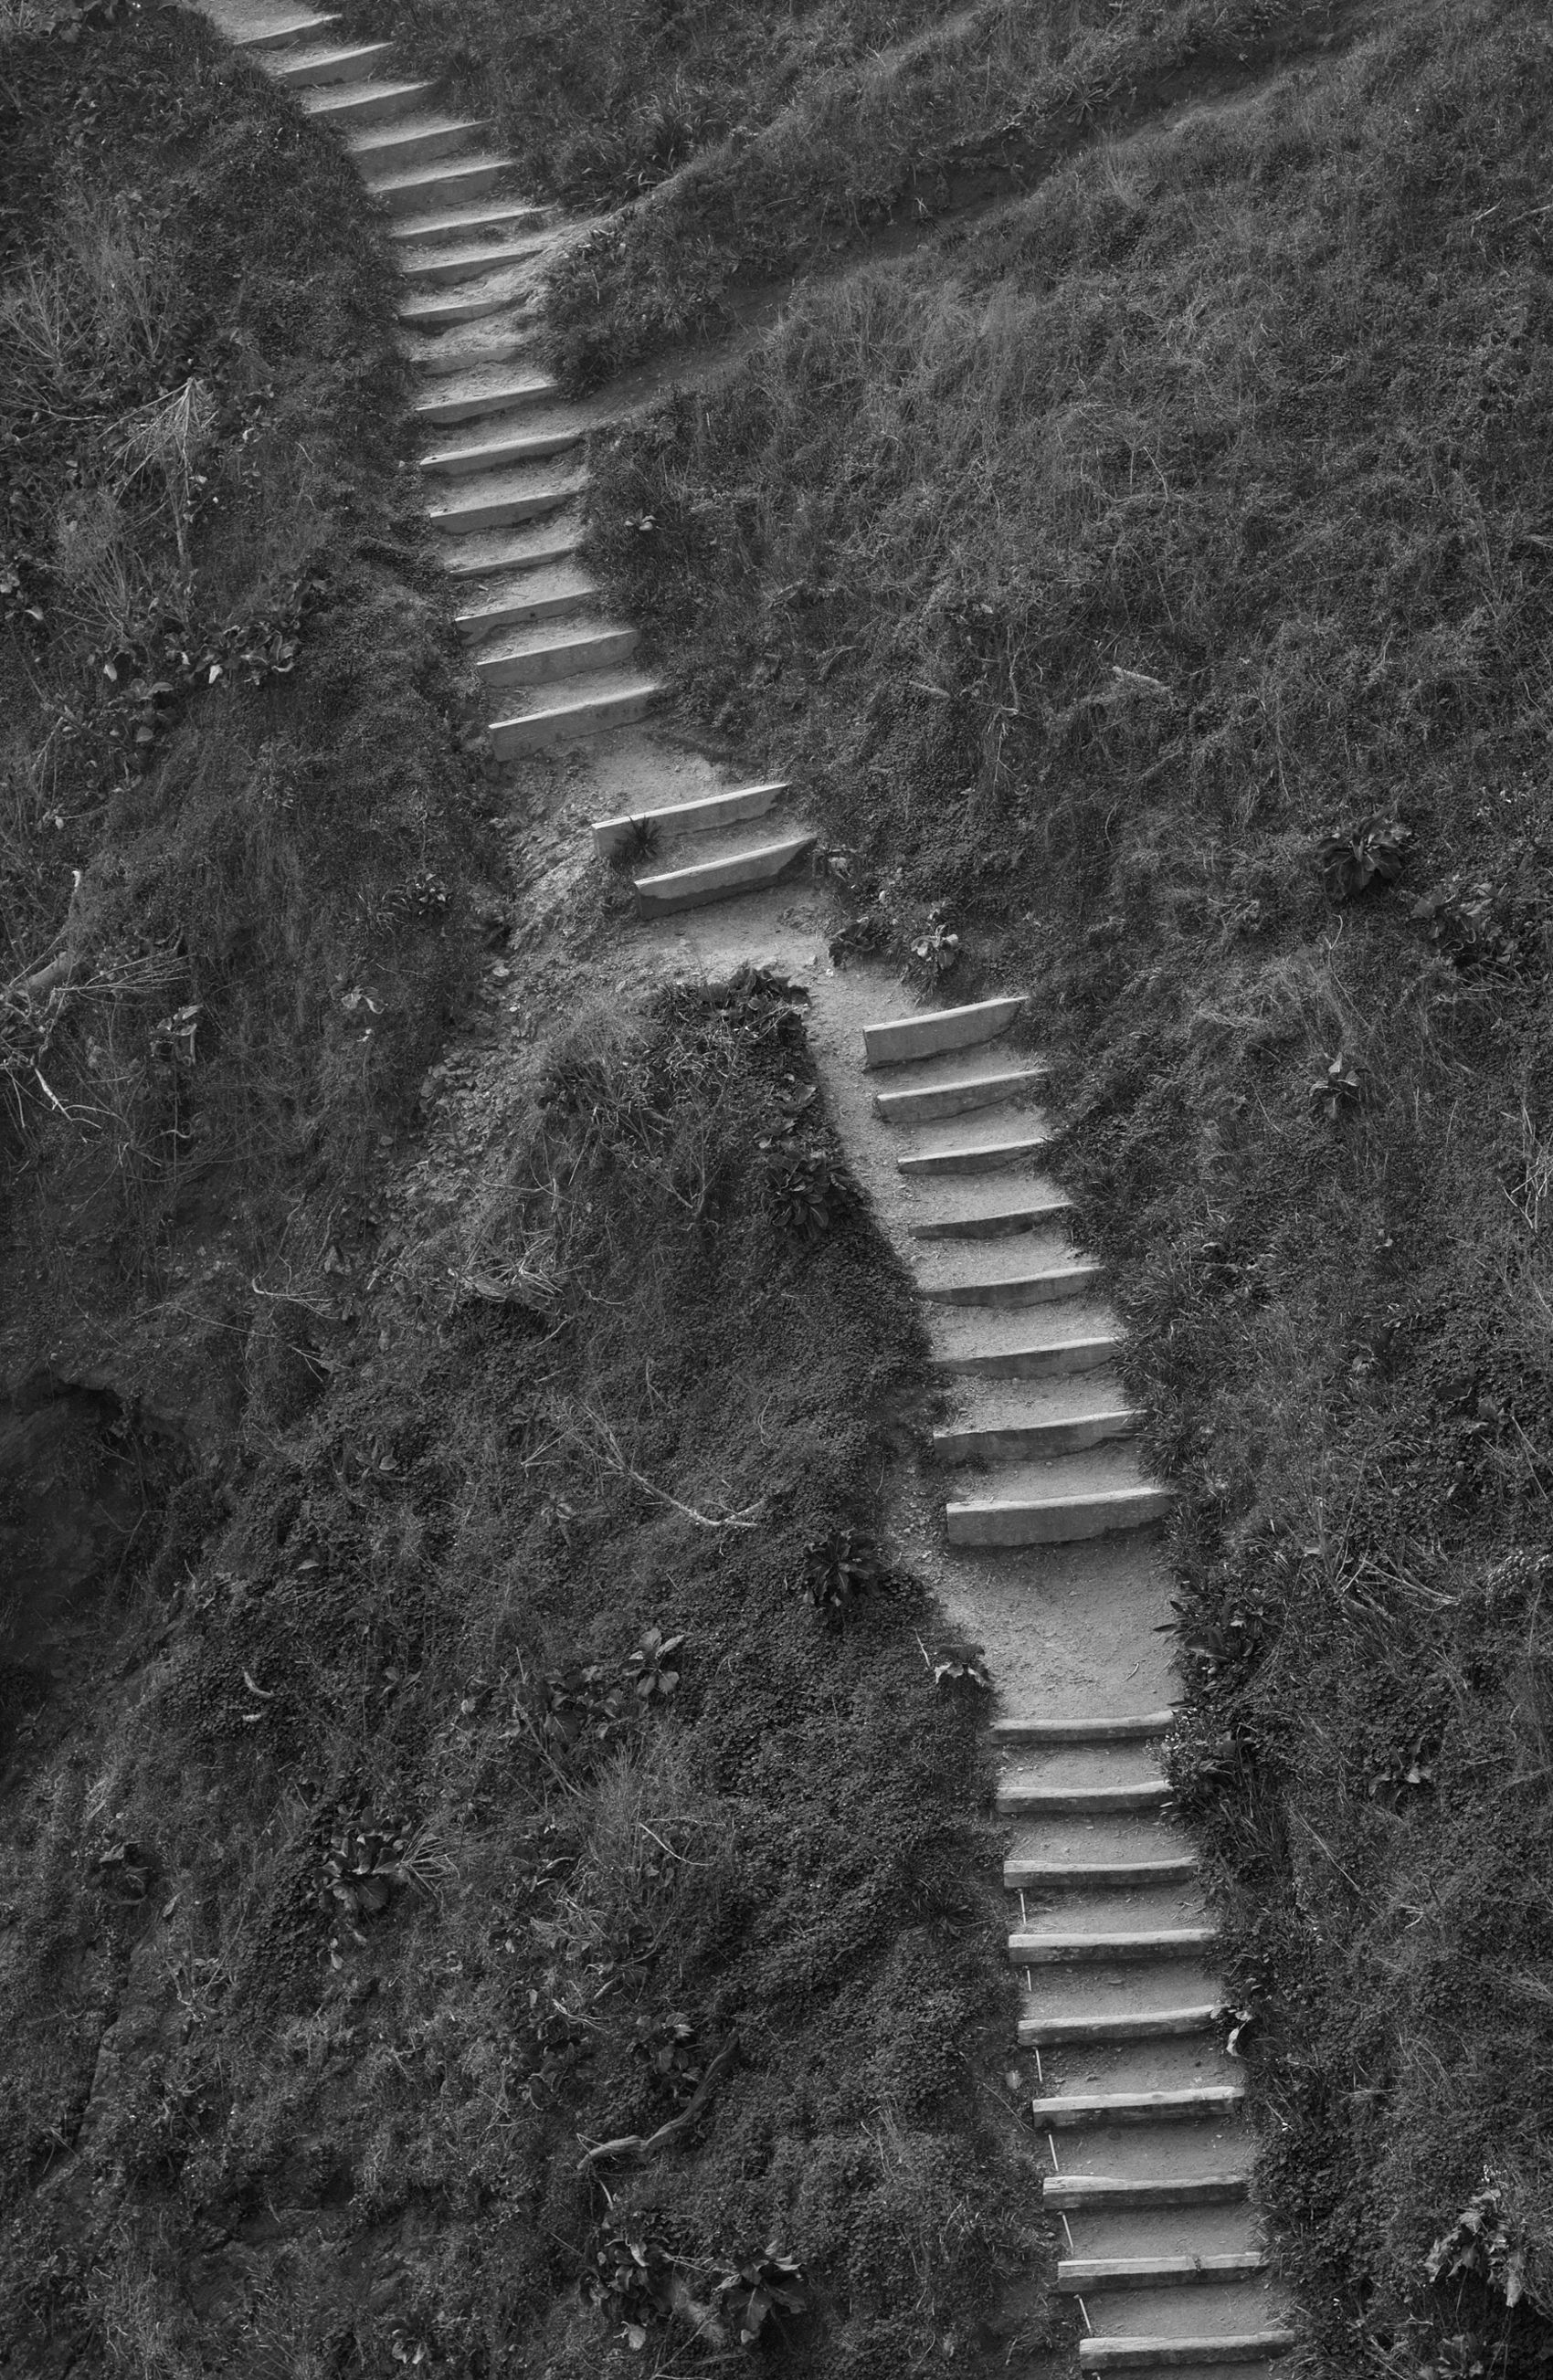 Beach Steps, Mendocino, California